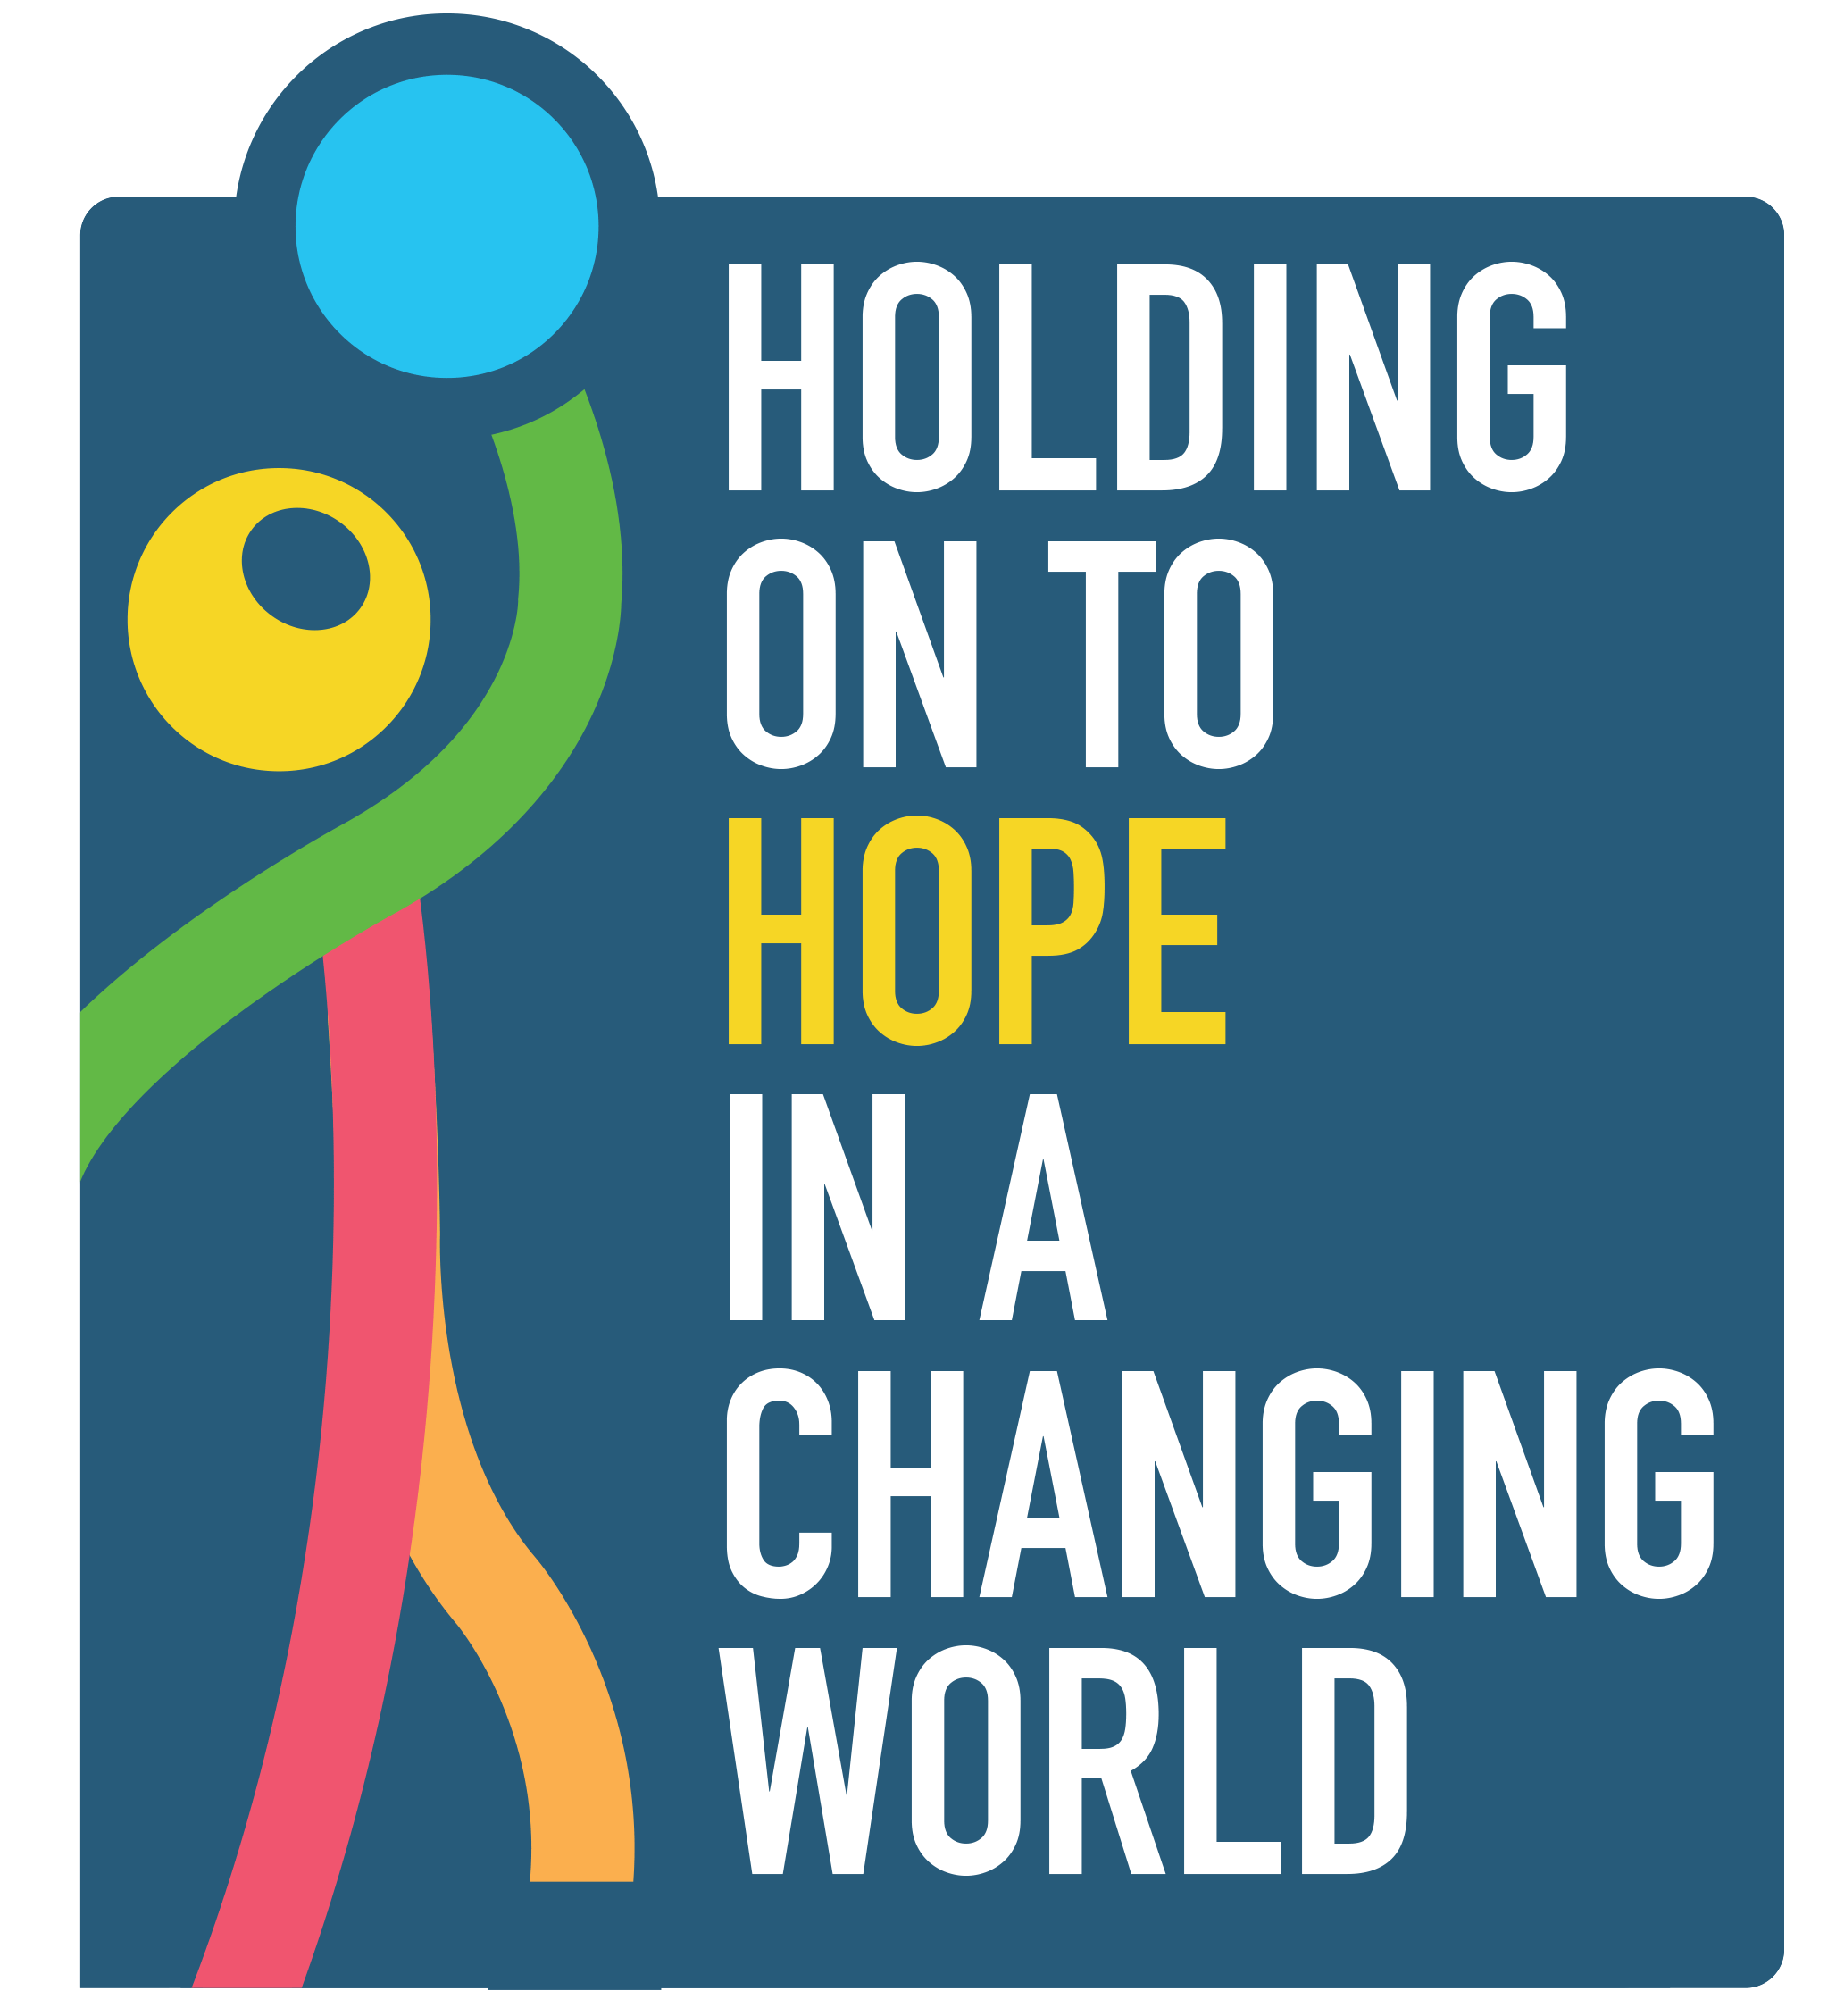 Holding on to hope in a changing world campaign logo